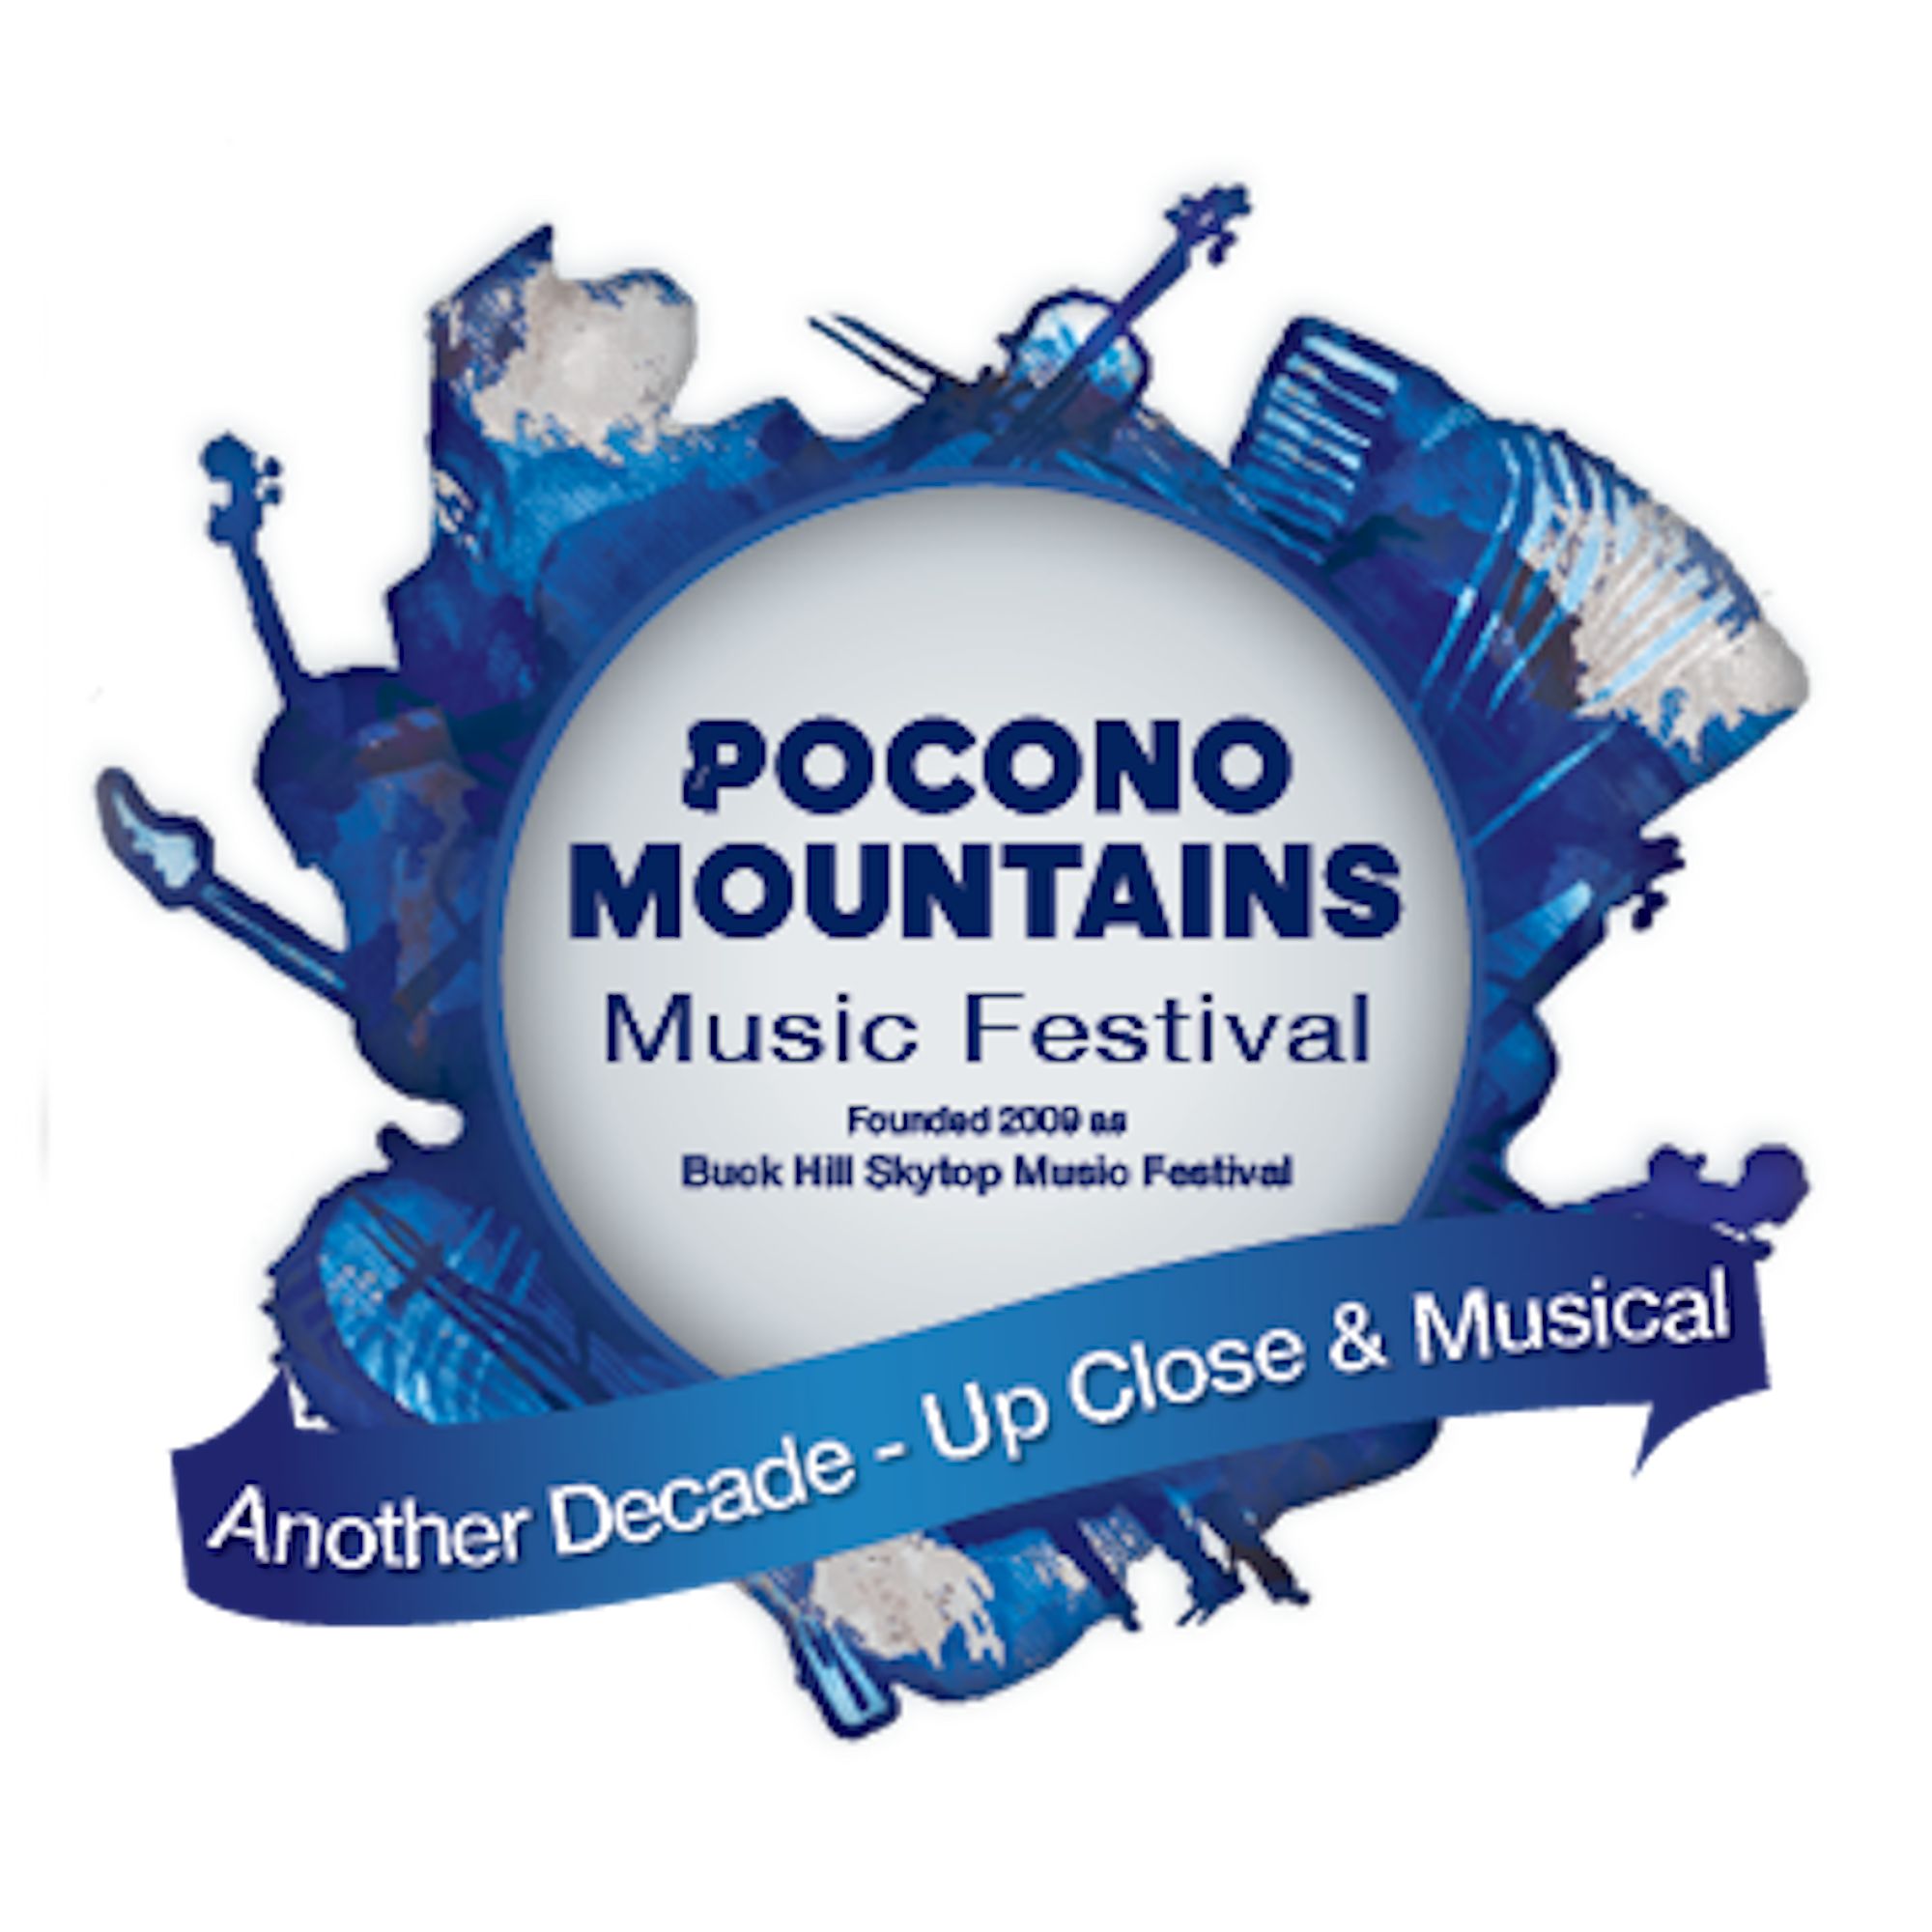 Pocono Mountains Music Festival